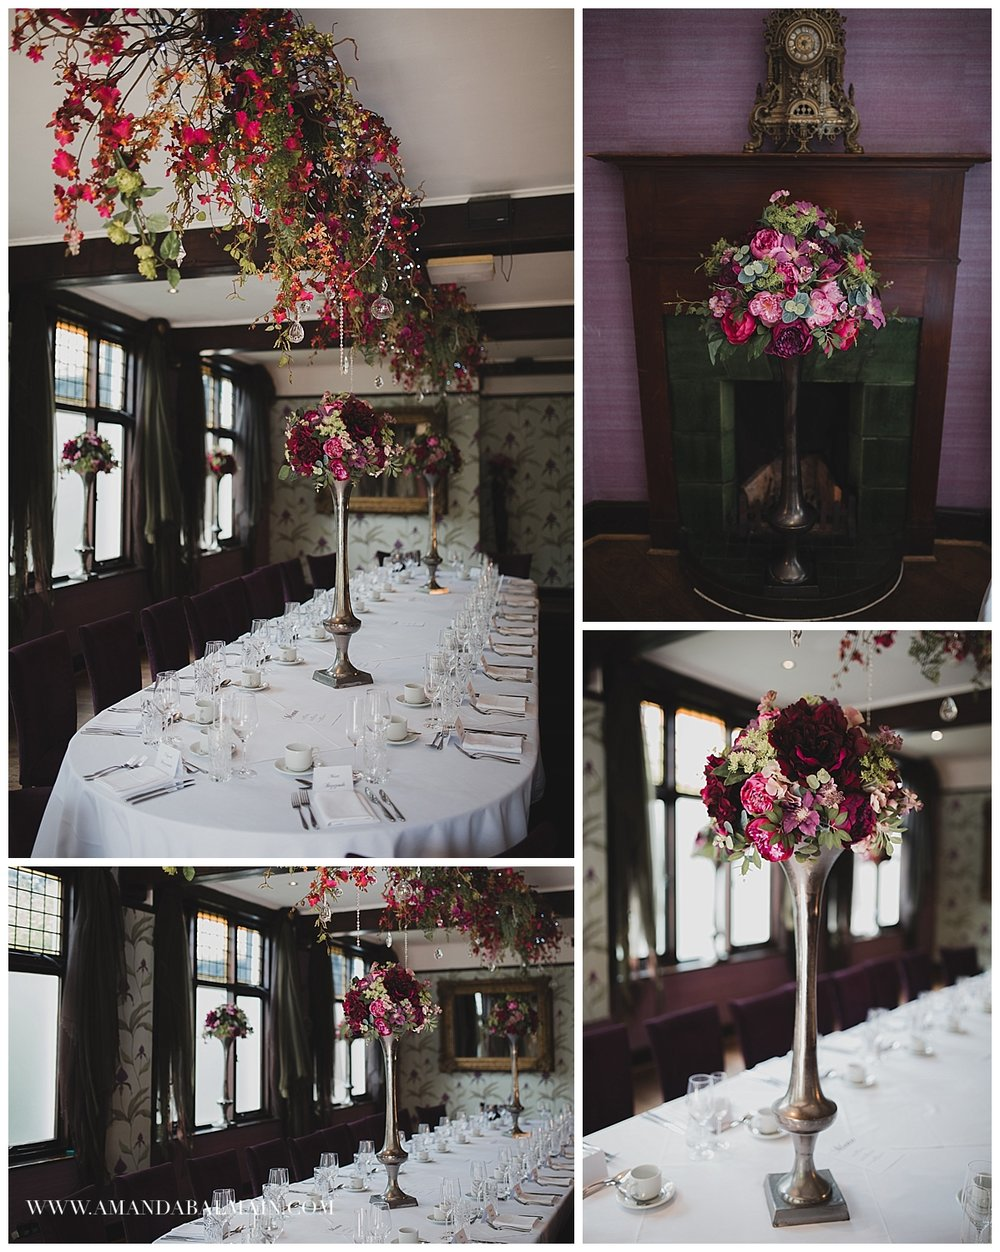 knutsford-wedding-venue